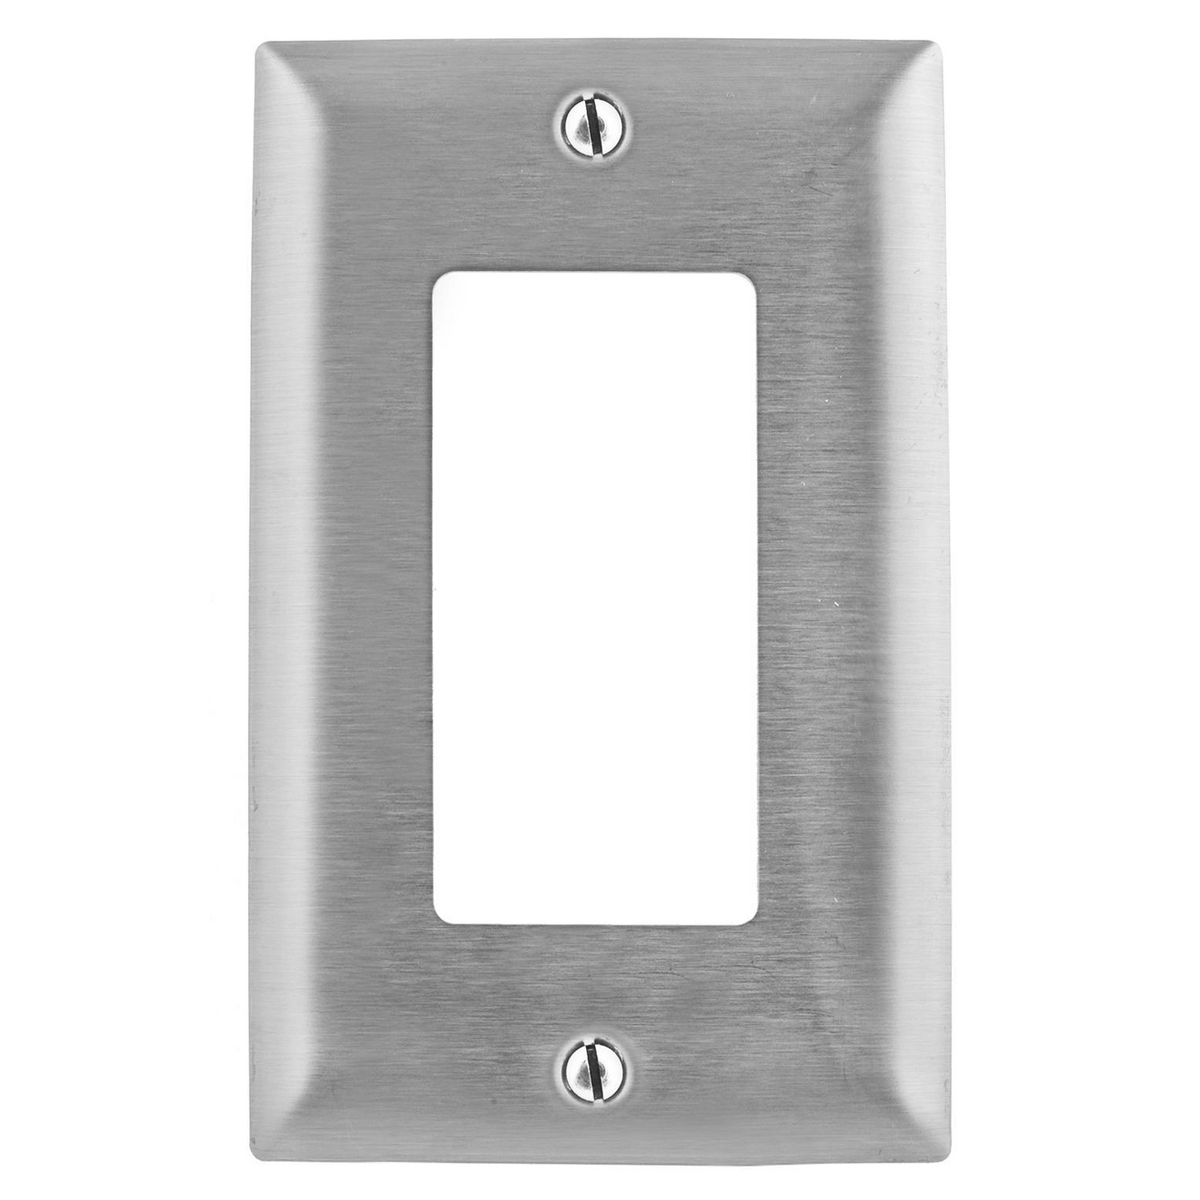 Hubbell SSJ26 1-Gang Stainless Steel Jumbo 1-Decorator Switch Strap Mount Wallplate